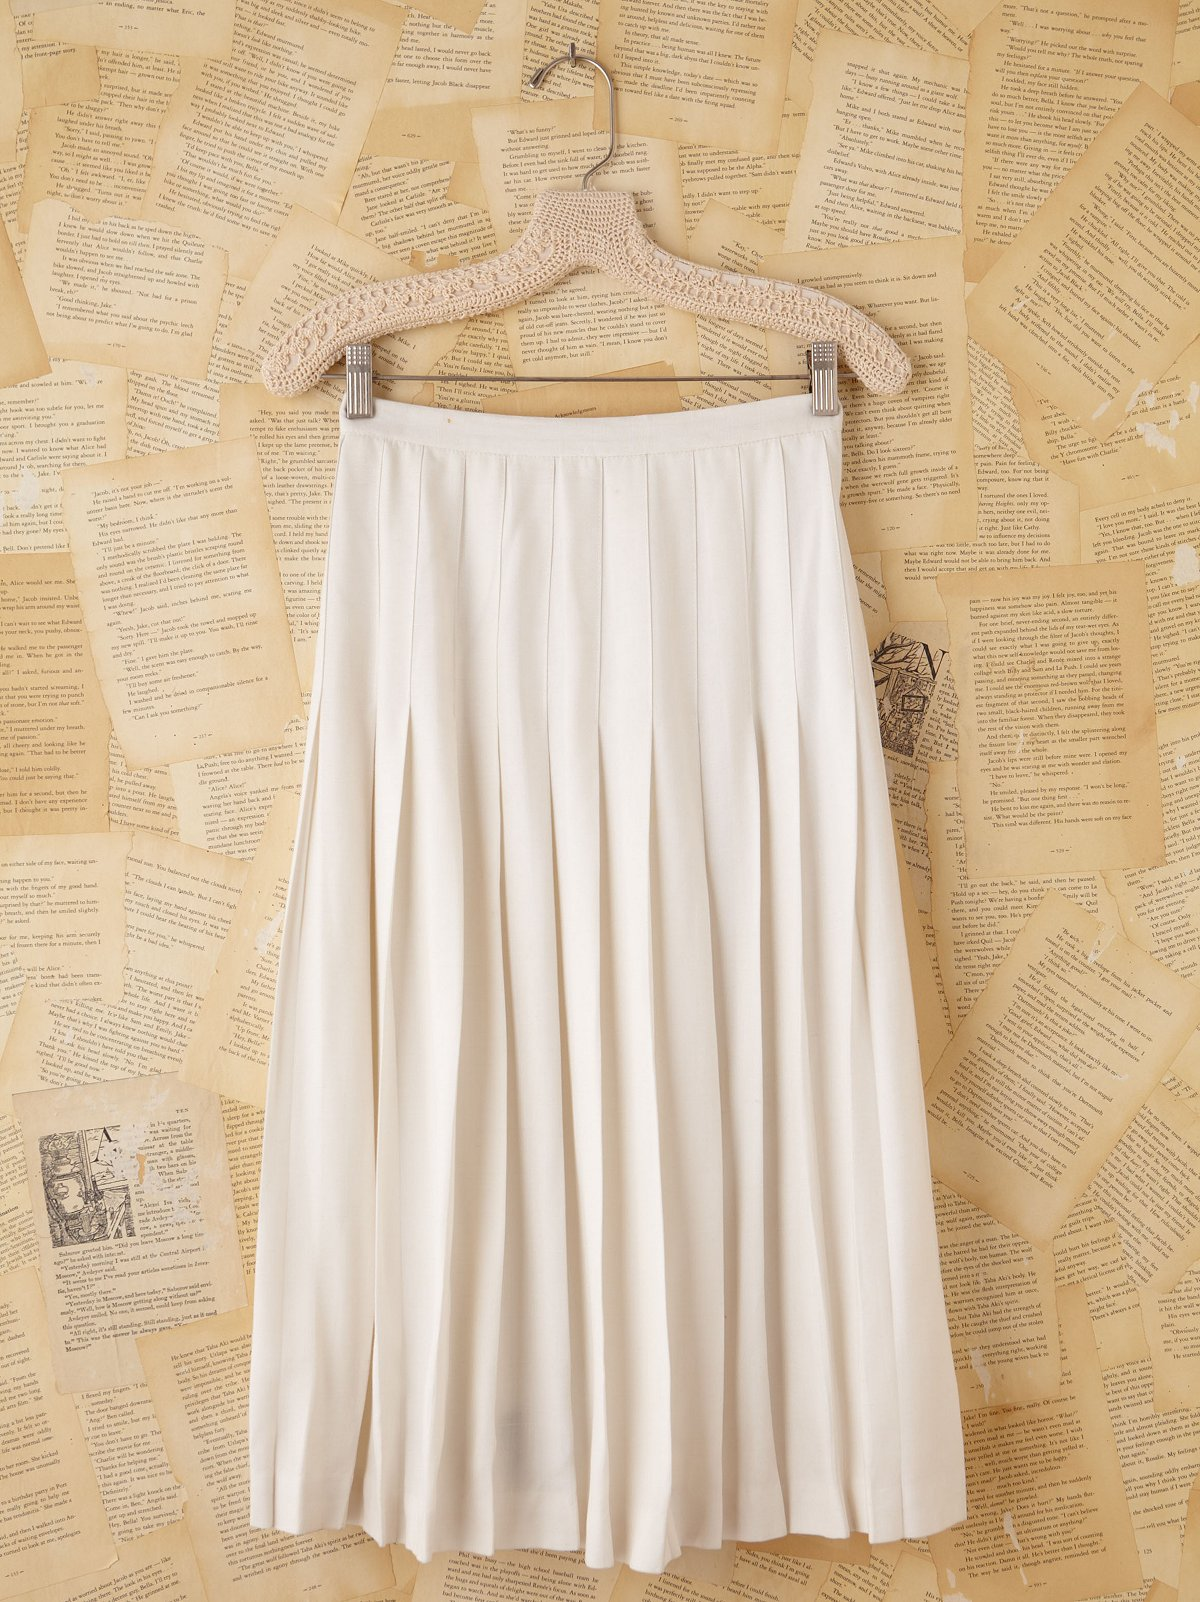 Vintage Burberrys' White Pleated Midi Skirt